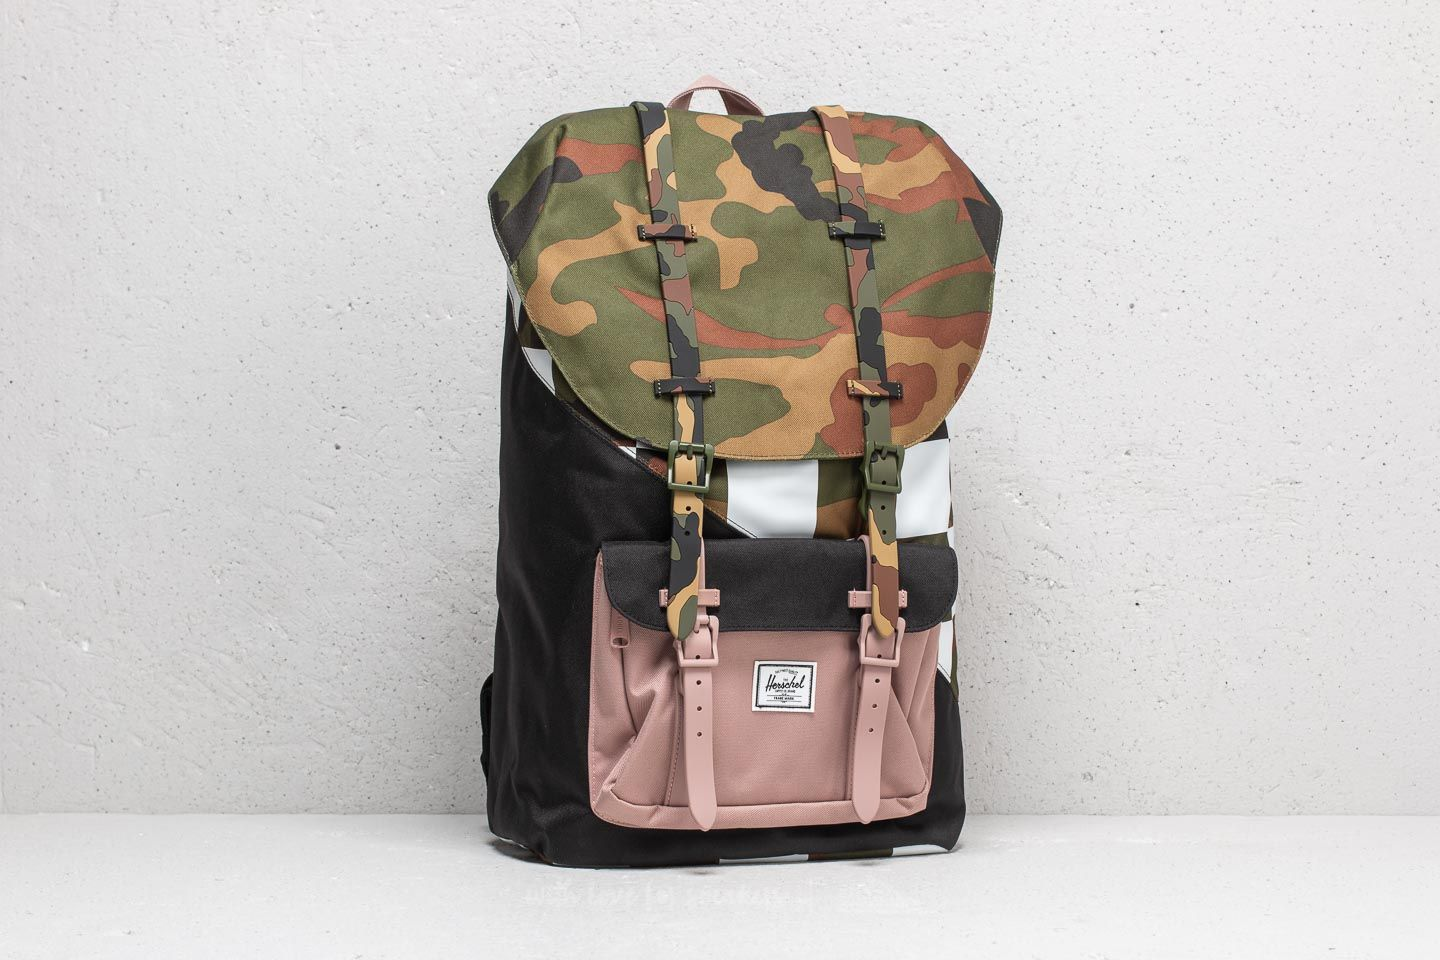 5d7e5647b45 Herschel Supply Co. Little America Backpack. Woodland Camo  Checker